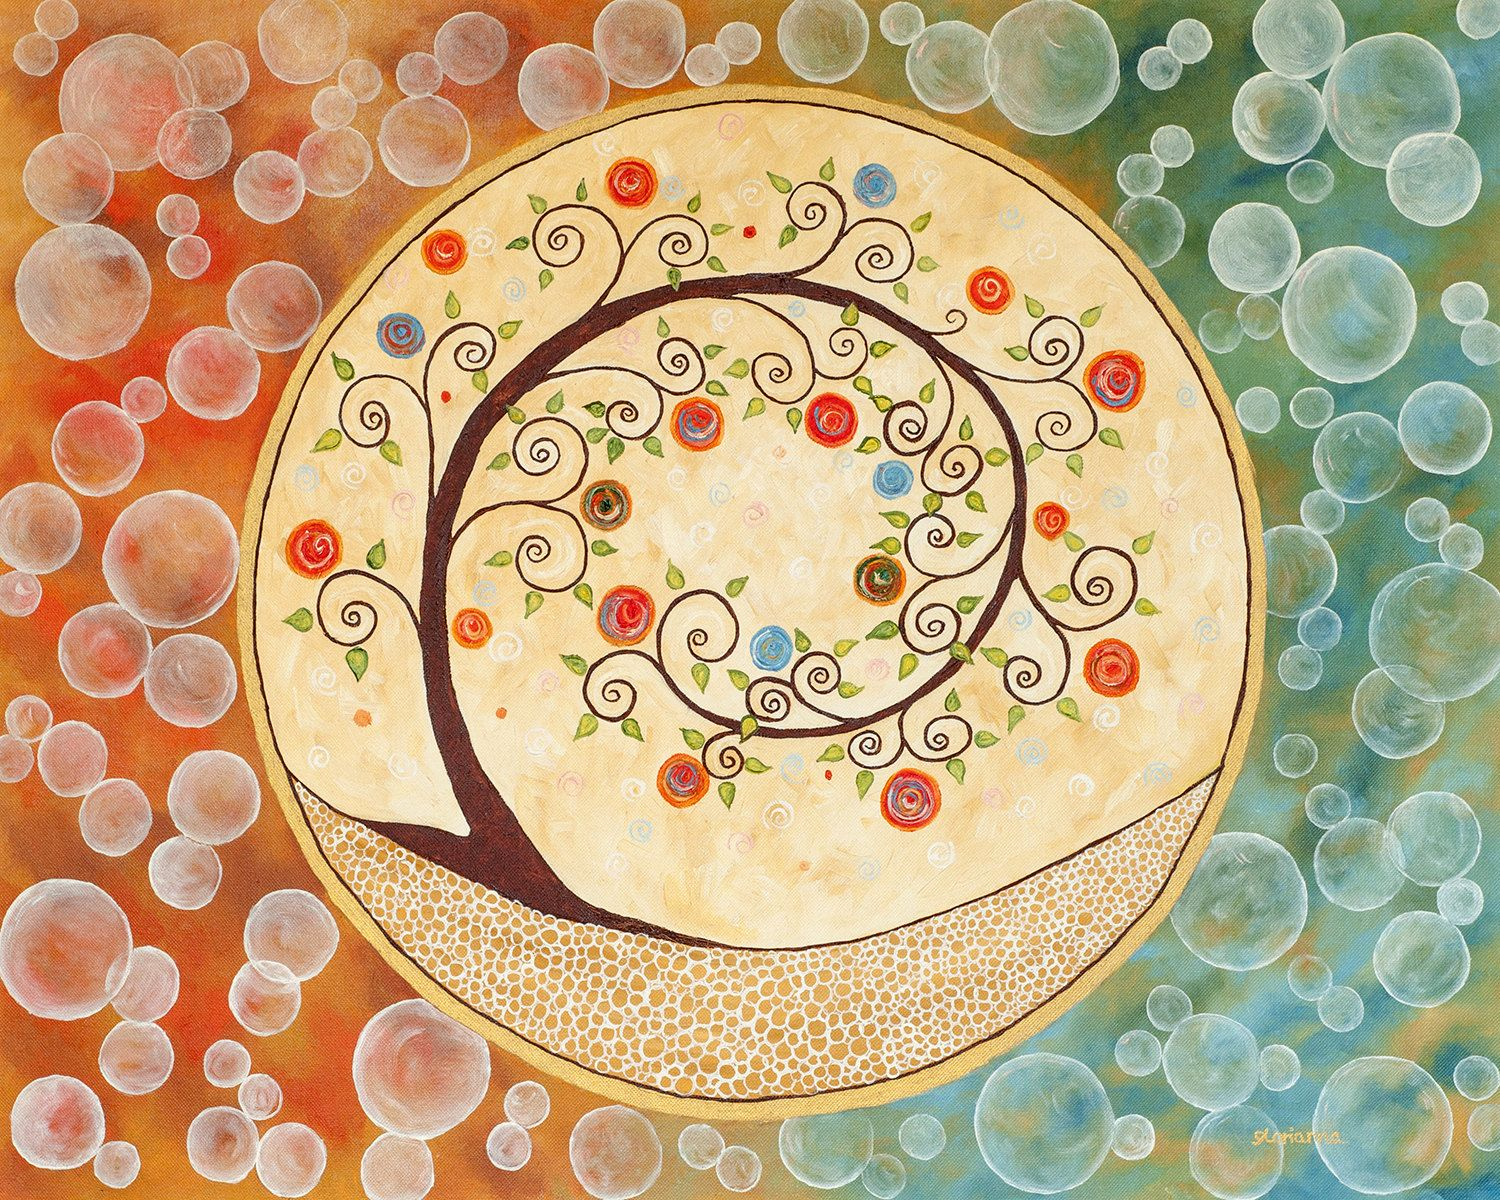 Tree of Life Art by Glorianna Circle of Life Cameo Abstract Painting ...